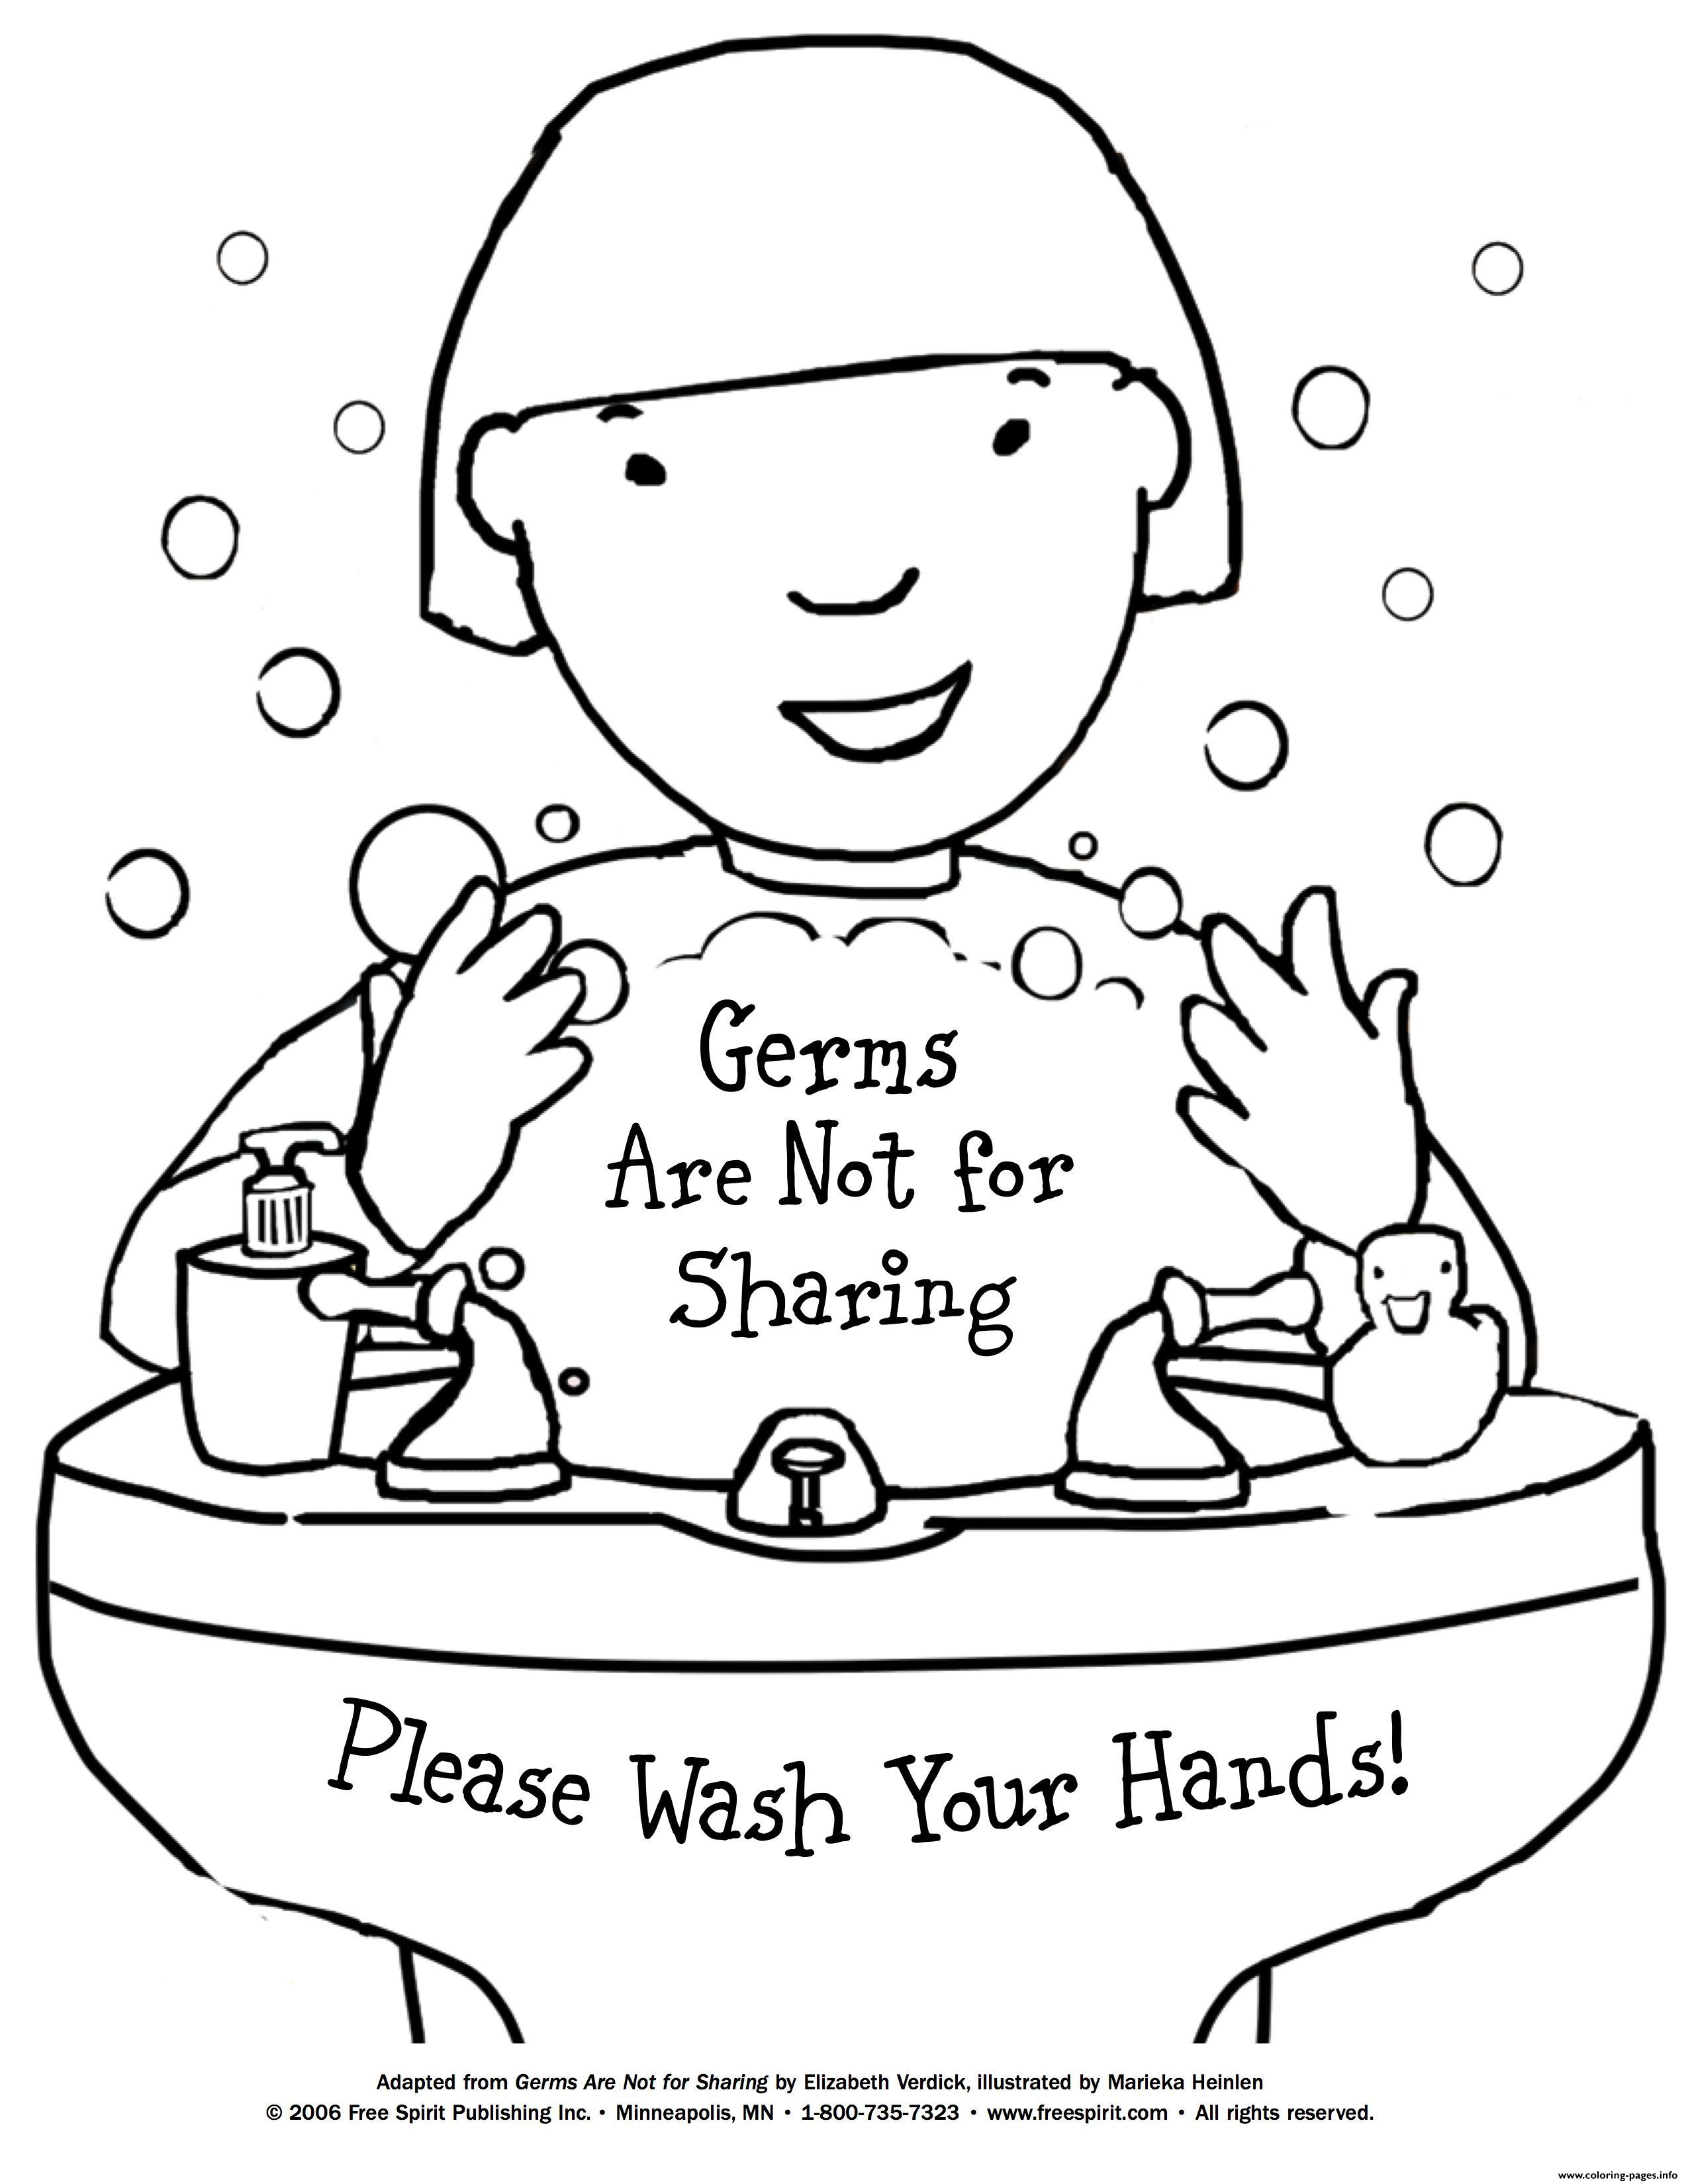 Germs Are Not For Sharing Coloring Pages Printable